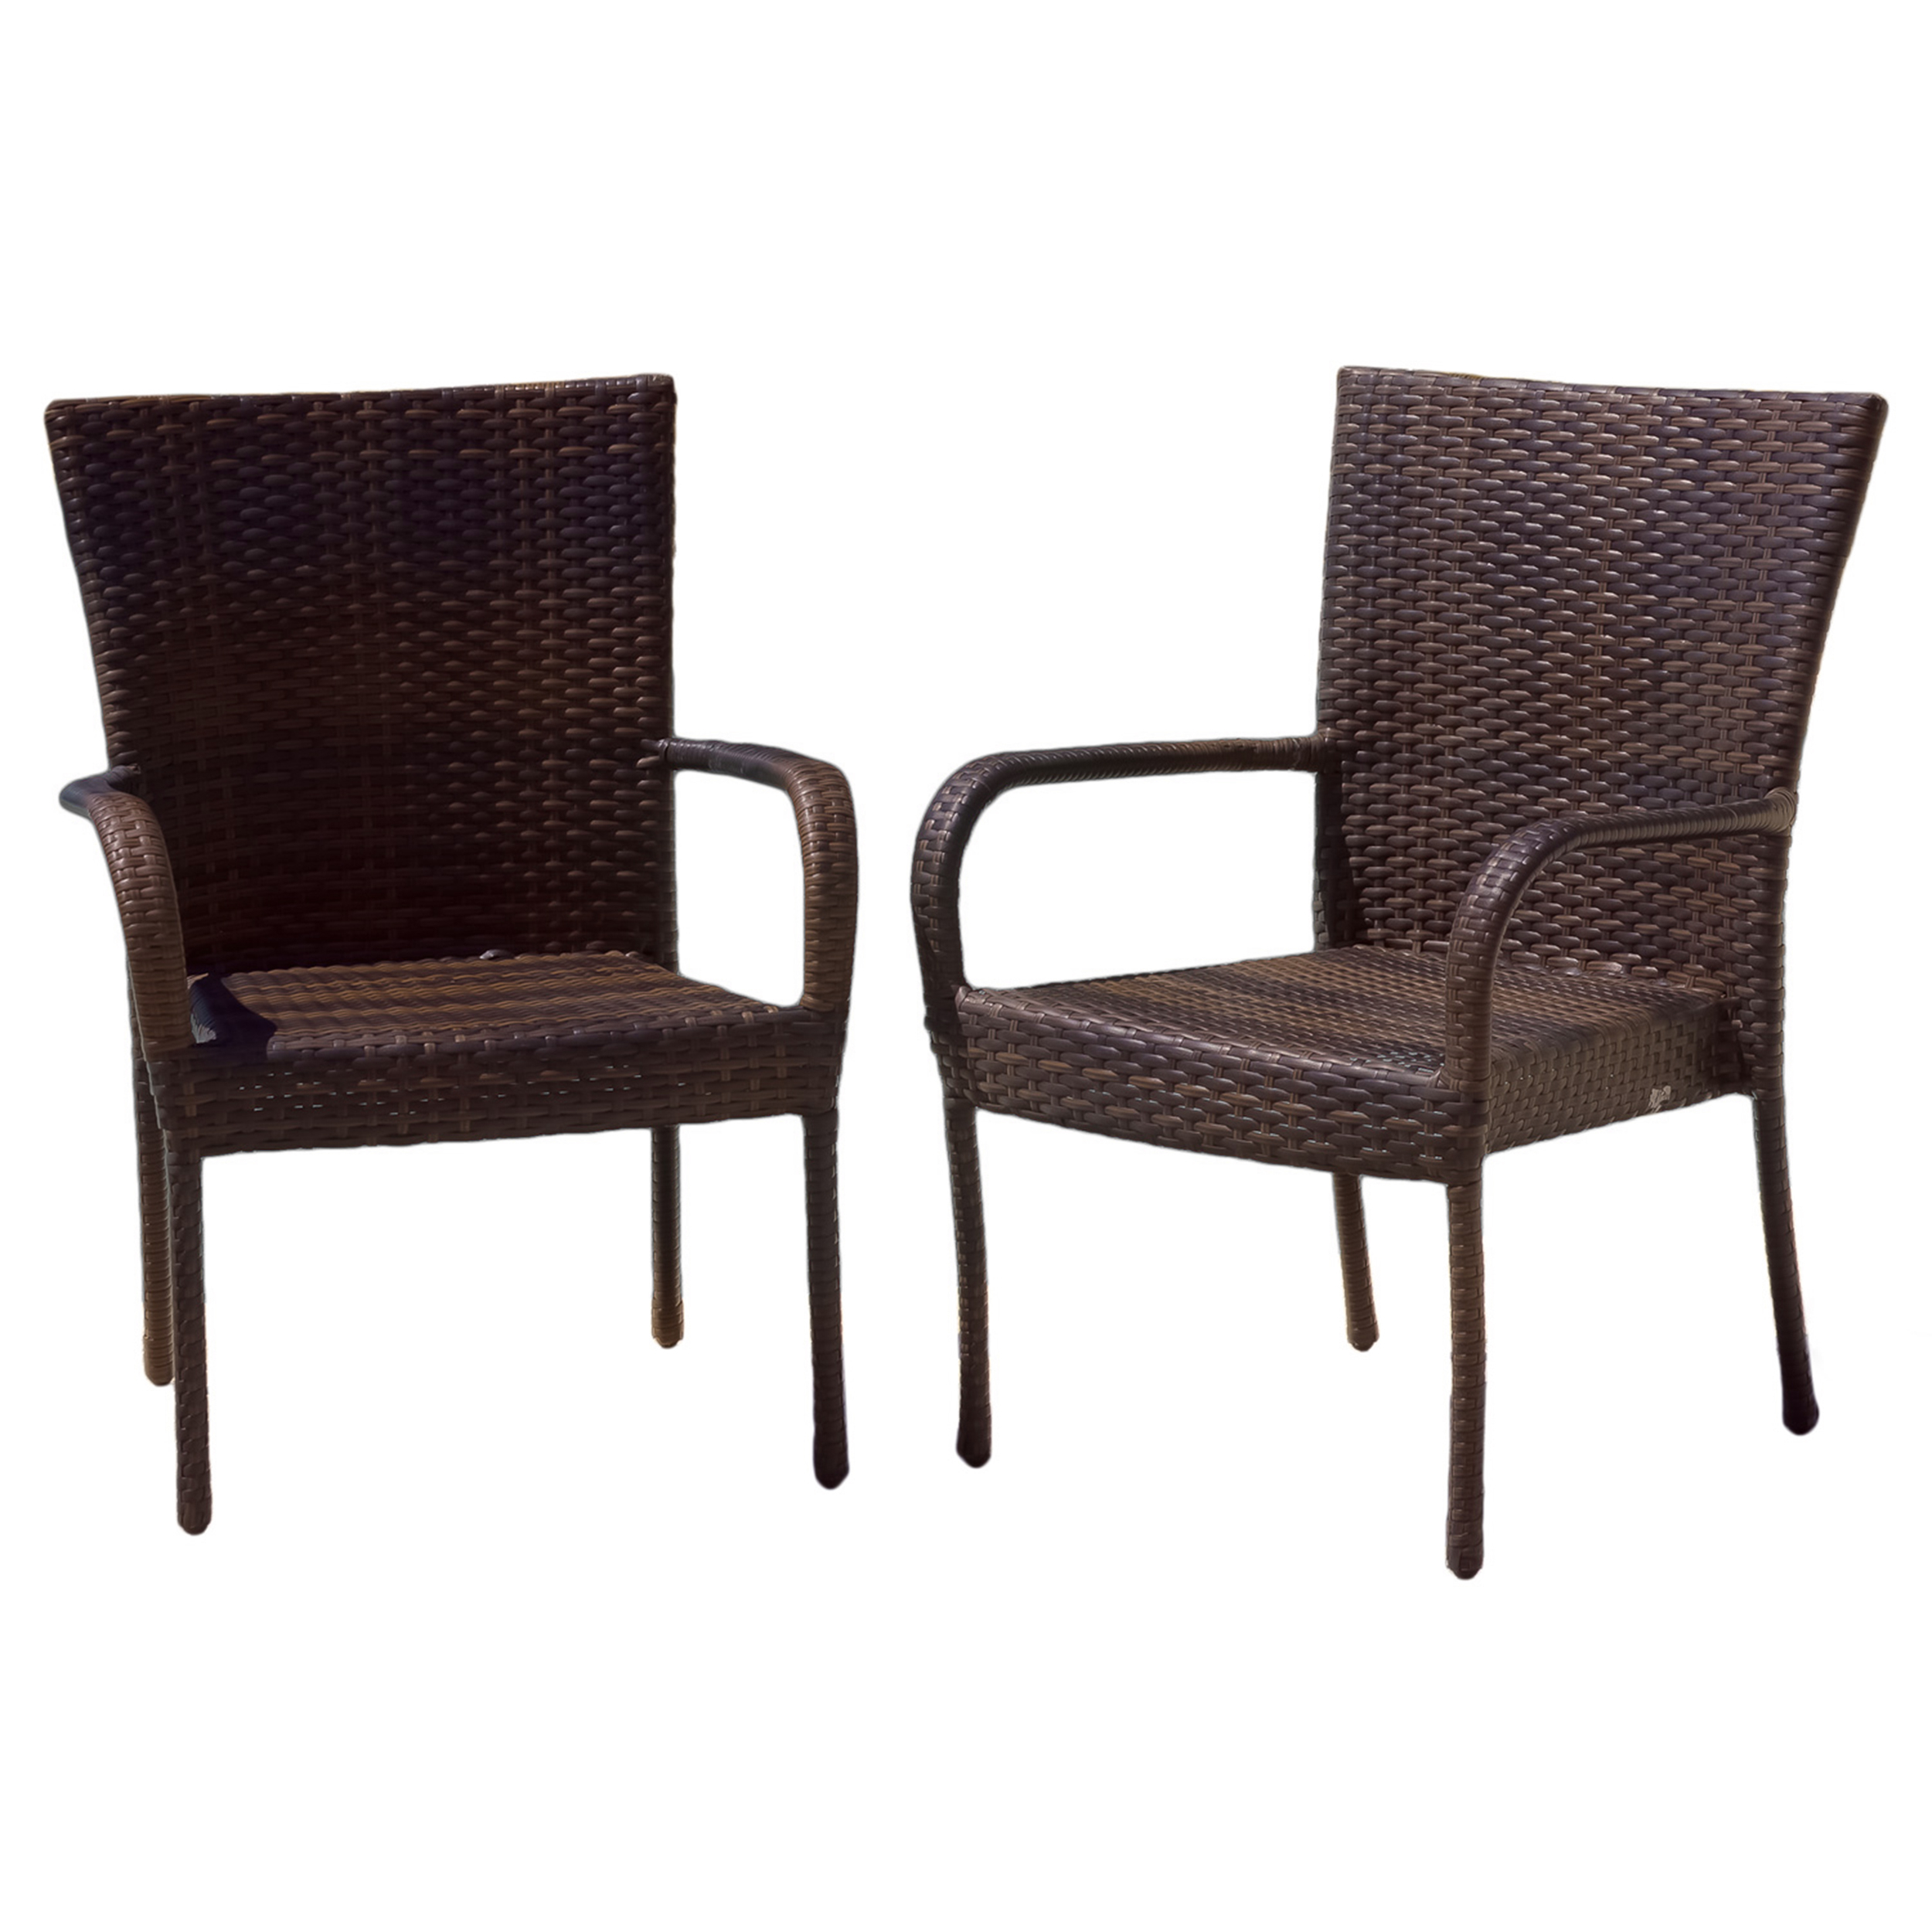 stackable wicker chairs ideas on foter